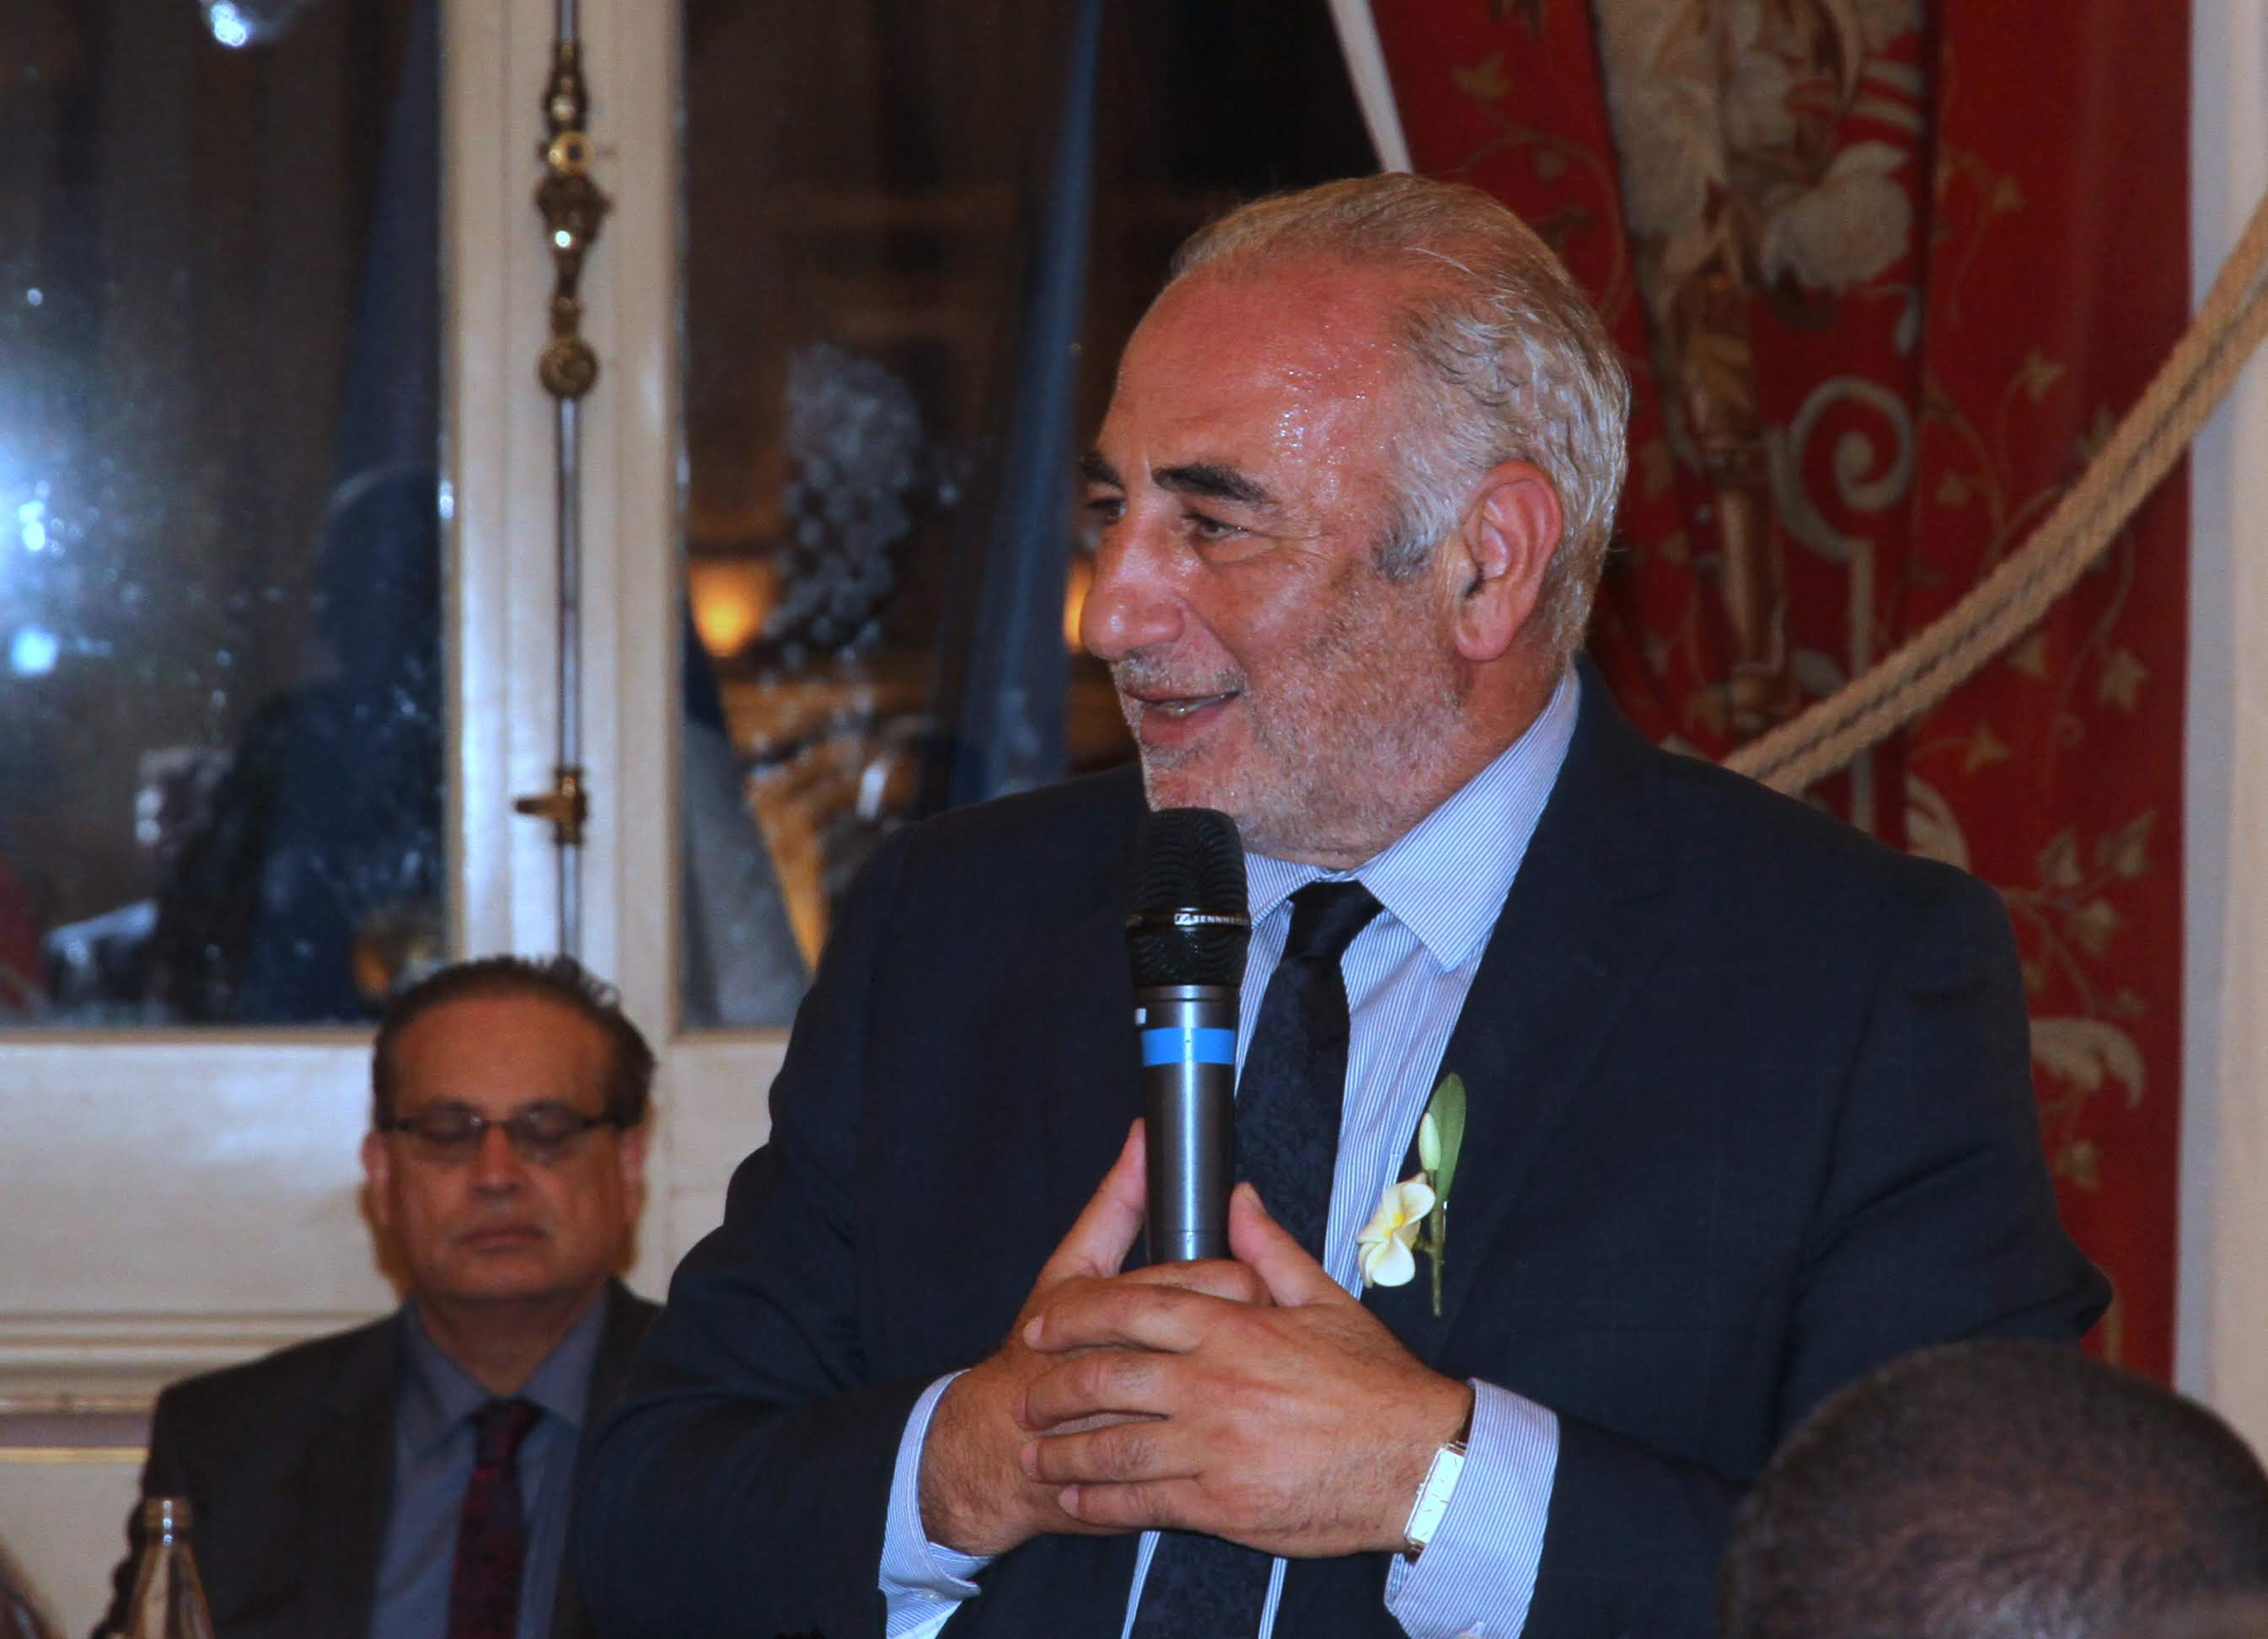 2018-06-22-Discours GALA Corps Consulaires -010